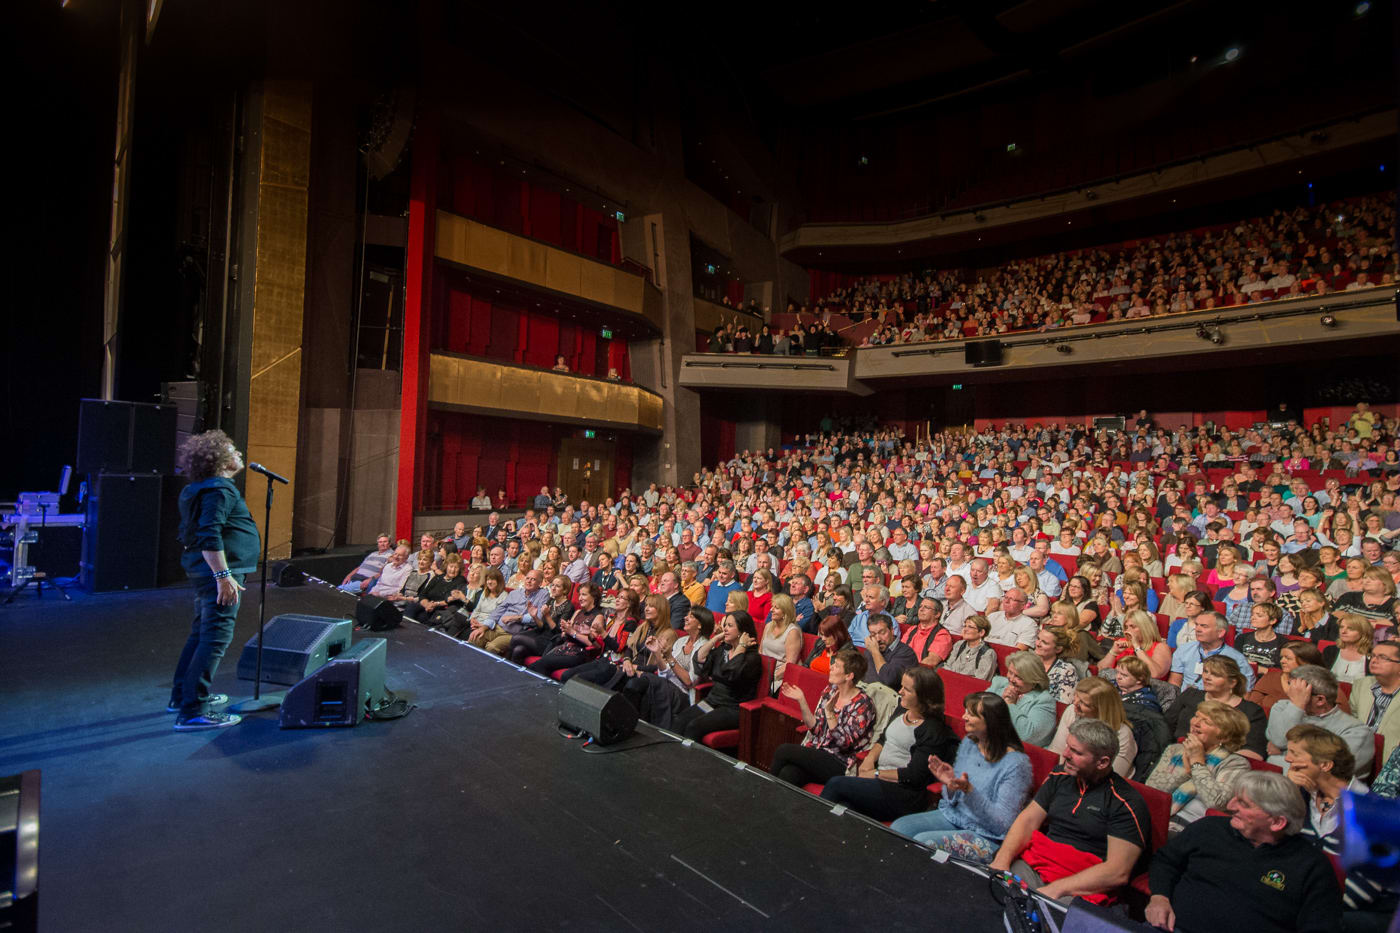 Leo Sayer at Bord Gais Energy Theatre by Sean Smyth (16-10-15) (88 of 129)